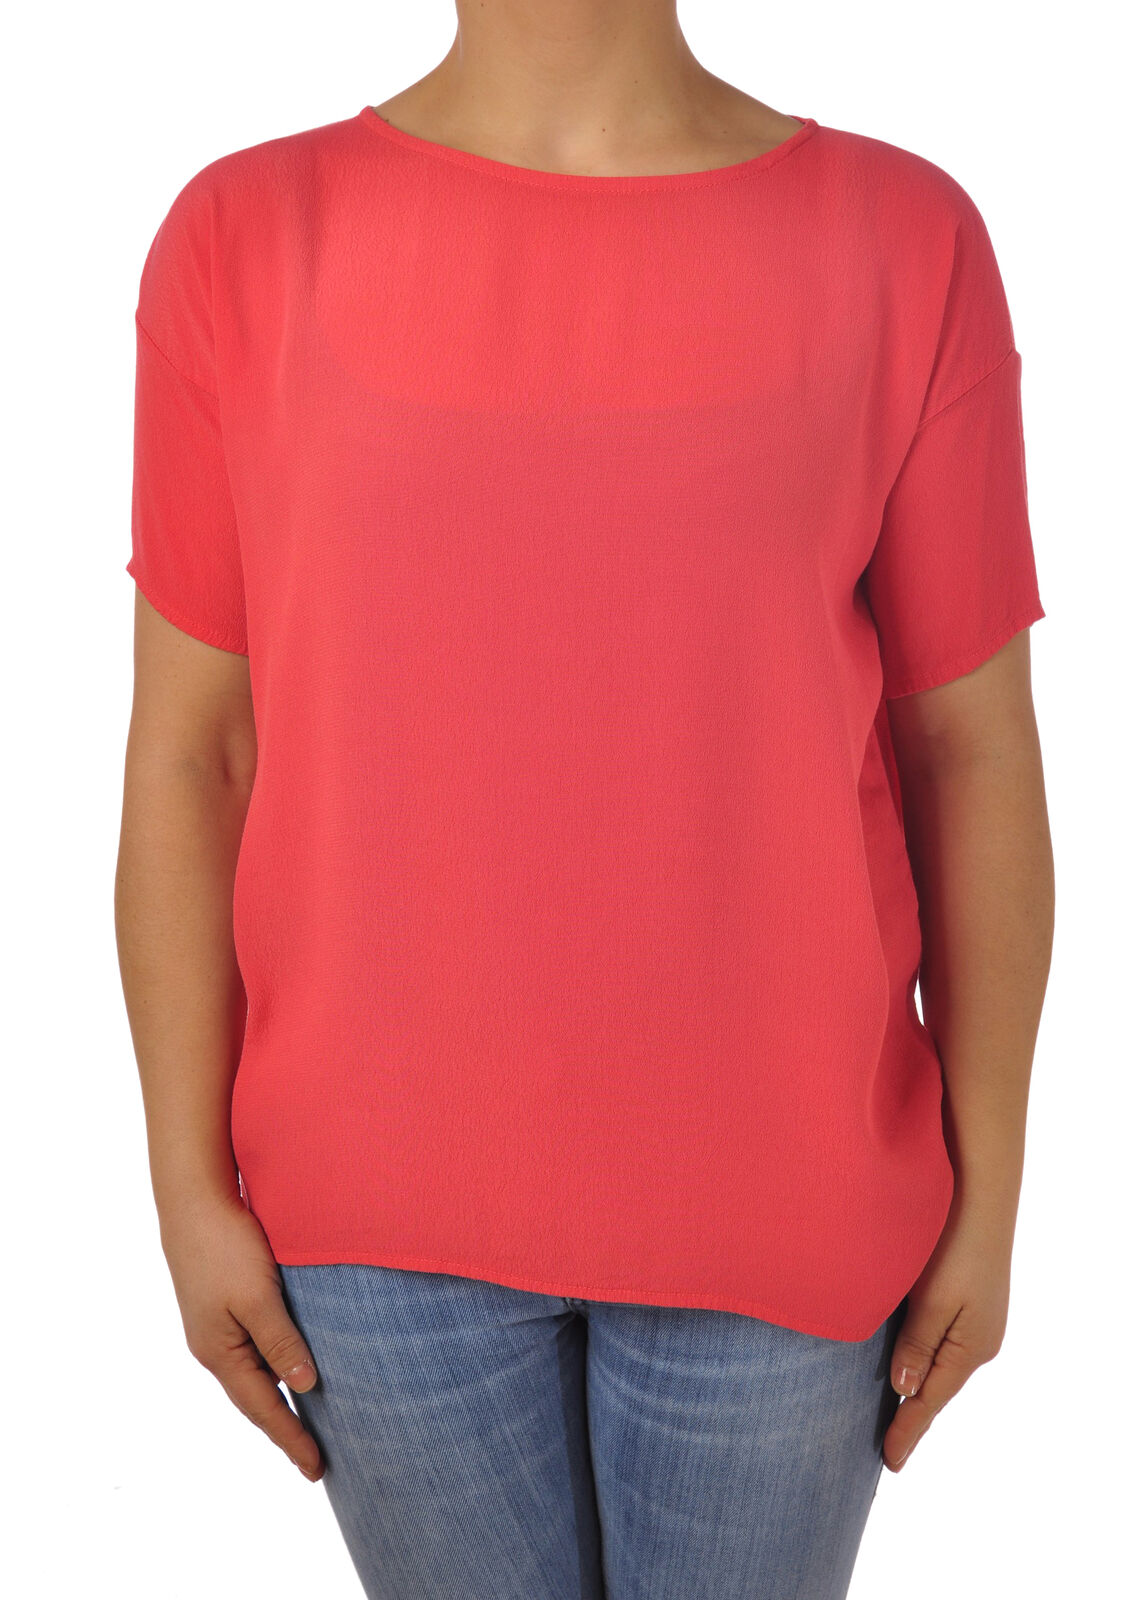 CROSSLEY - Shirts-Blouses - Woman - Pink - 5087412F184044